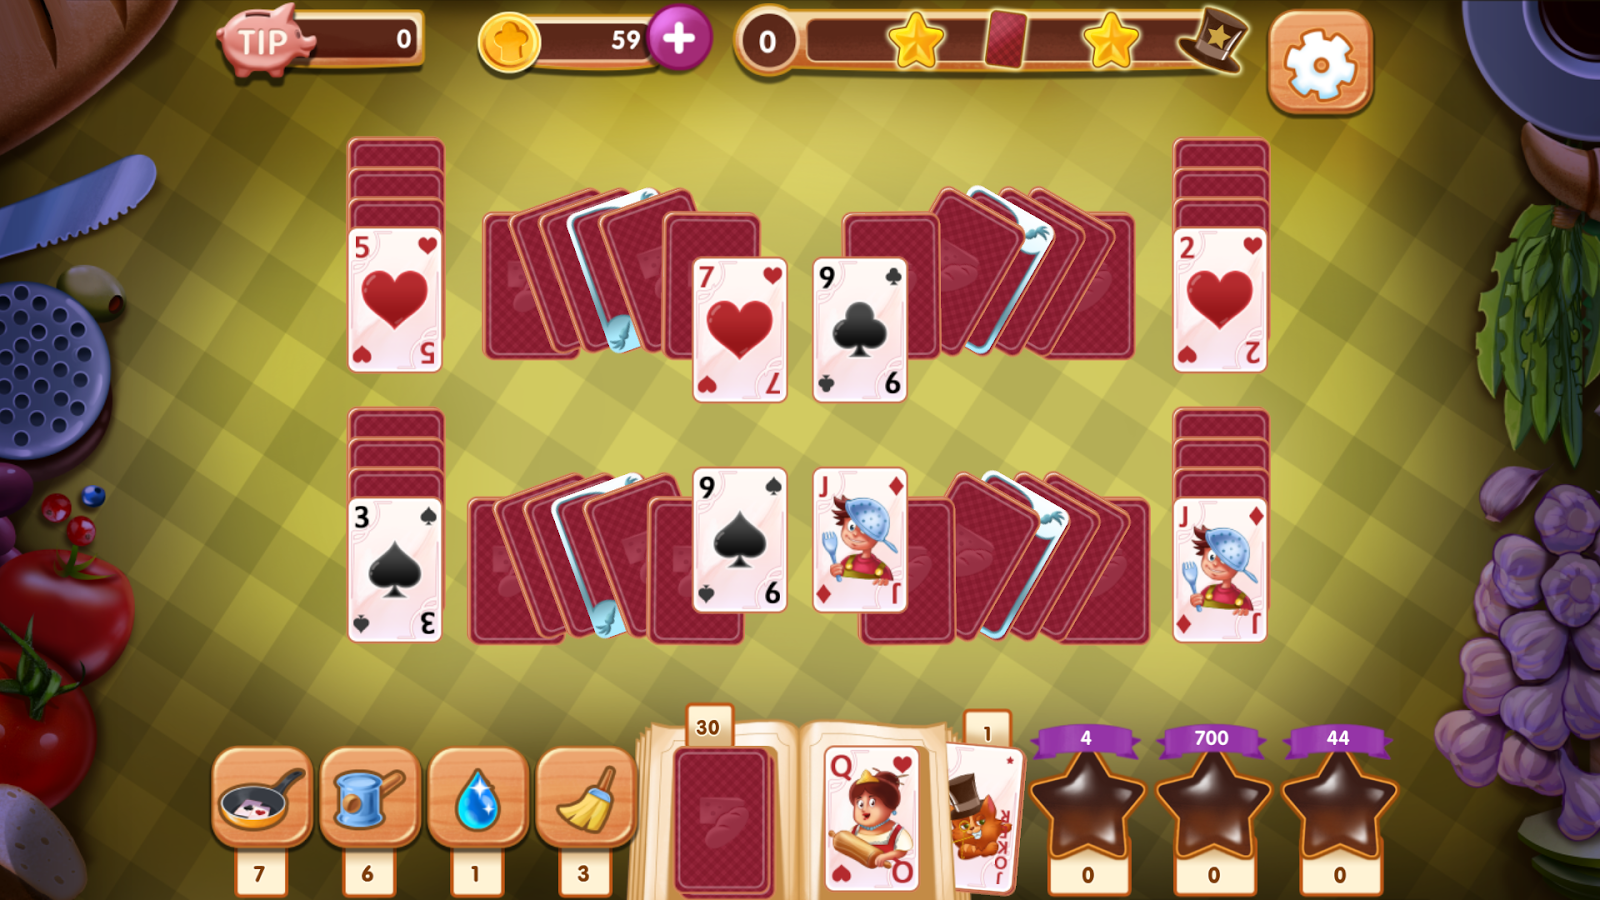 Tasty Solitaire Classic Screenshot 5